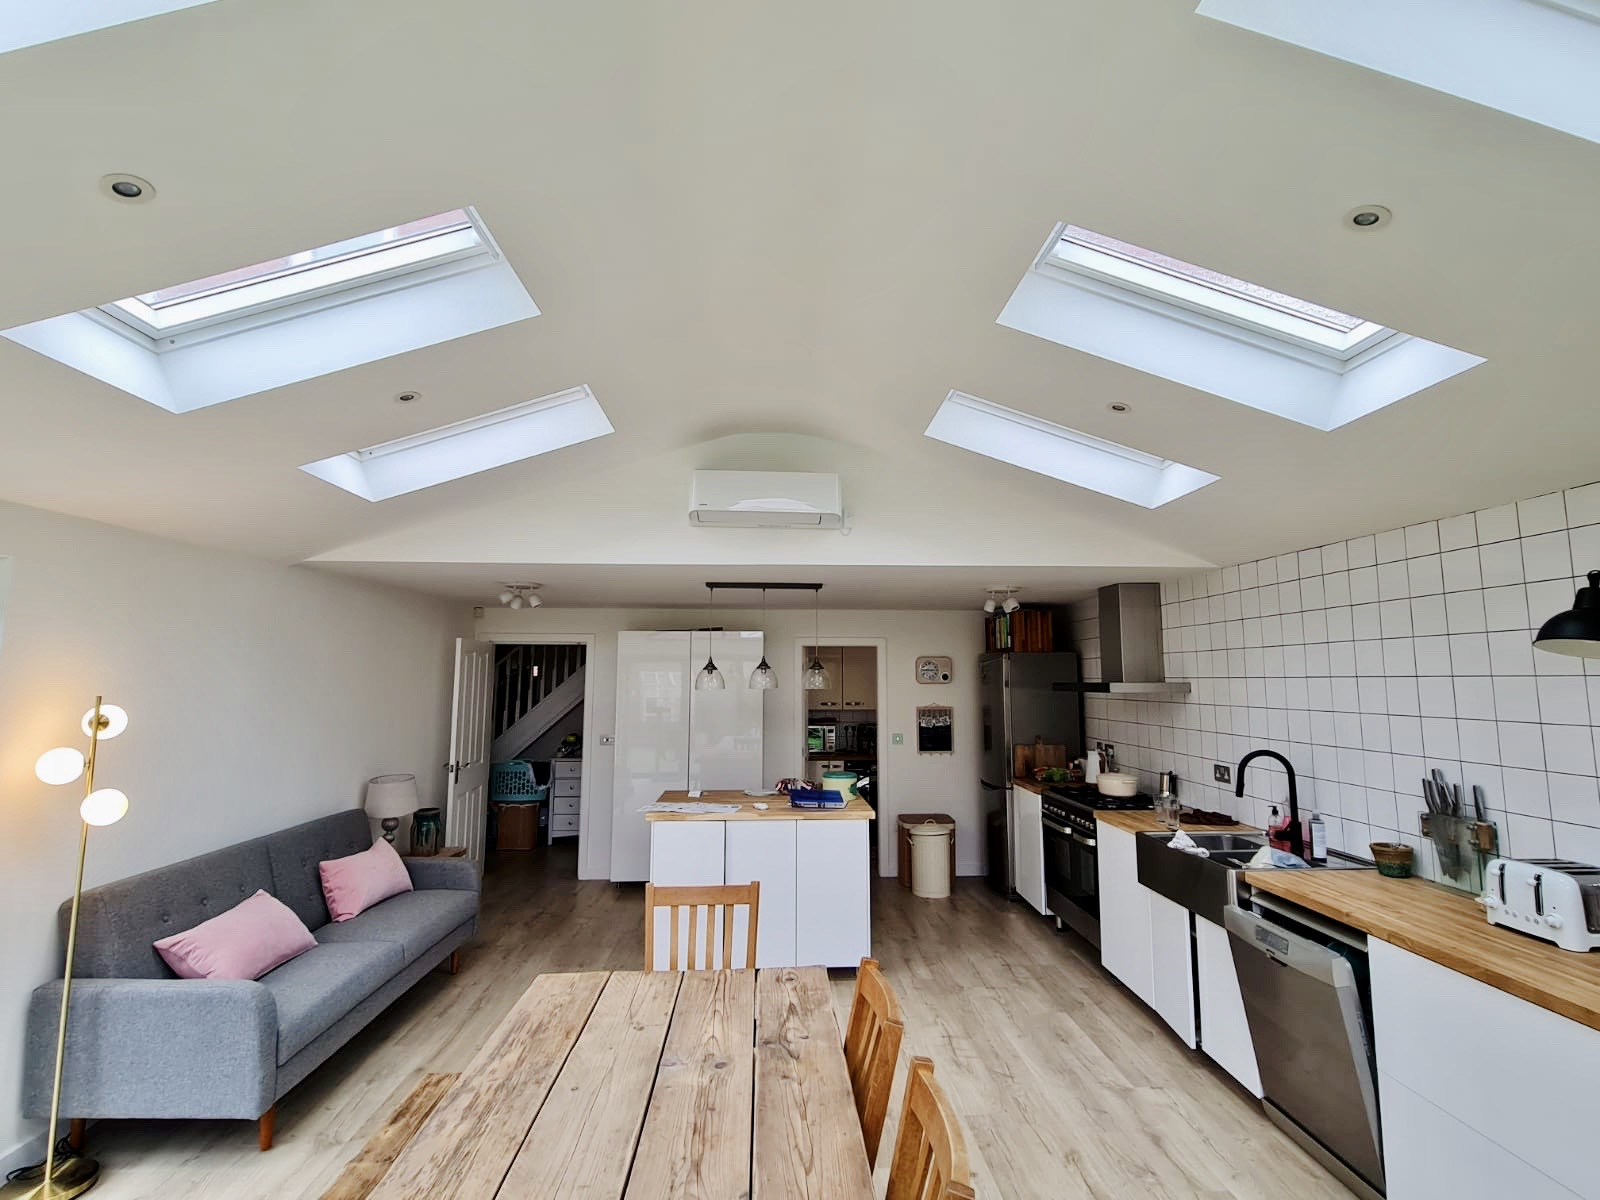 Toshiba wall mount installed in kitchen extension